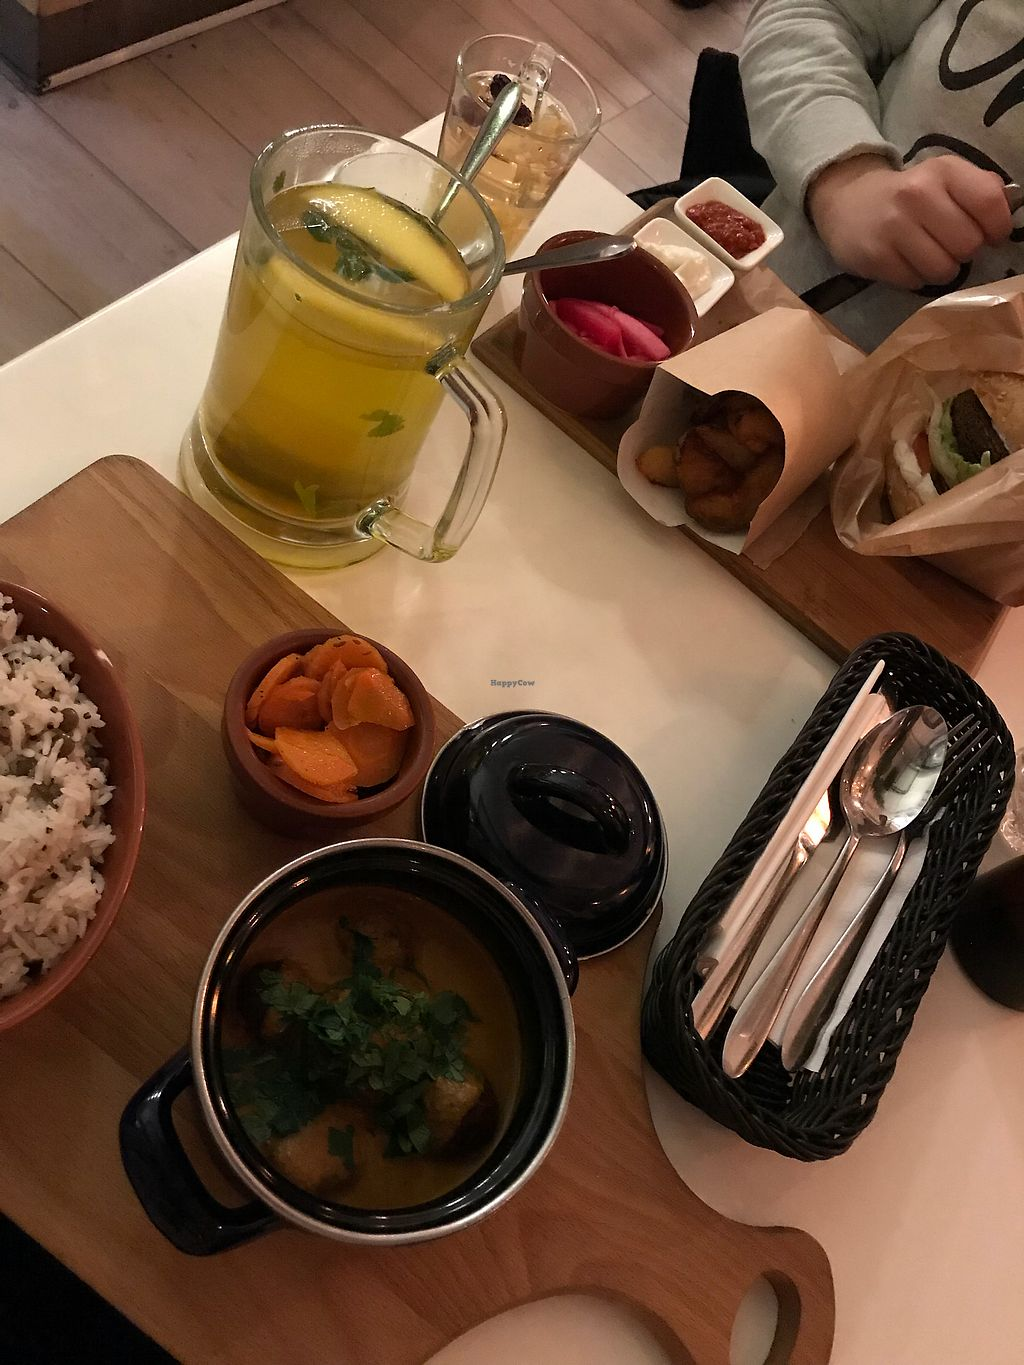 """Photo of Tel Aviv Food & Wine  by <a href=""""/members/profile/ellengdx"""">ellengdx</a> <br/>AMAZING food!! And a whole wide selection of different cuisines. In the background: 'Buddha Burger' - one of the best vegan burgers we have ever tried. The fries and aioli sauce were so delicious I would come back just for them, but the burger was just something else! In the front: 'Kofta' in cumin sauce. Absolutely divine. Needless to say any more!  <br/> January 8, 2018  - <a href='/contact/abuse/image/25838/344449'>Report</a>"""